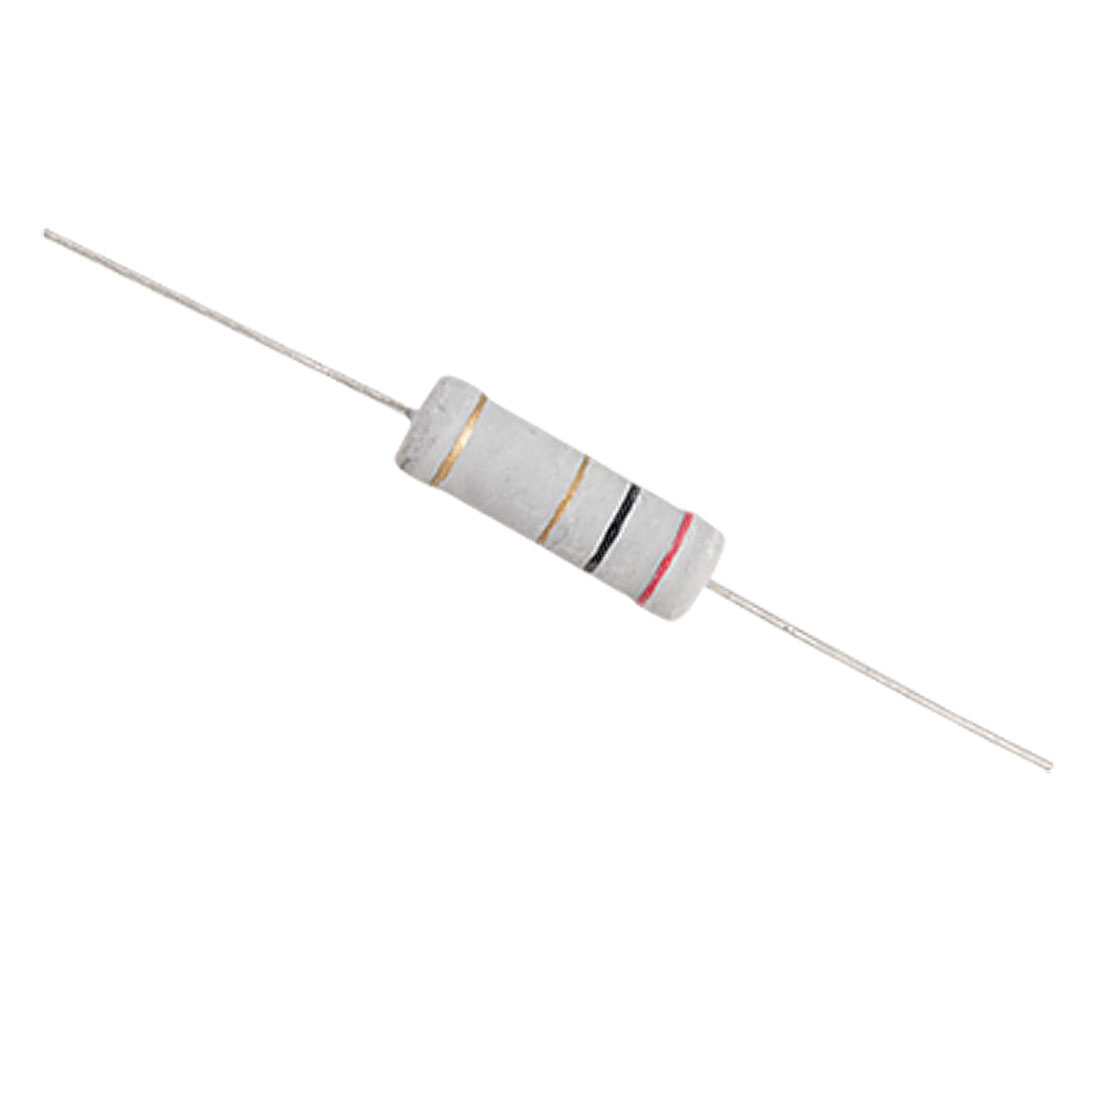 700V 2 Ohm 5W Axial Lead Metal Oxide Film Resistors 50 Pcs